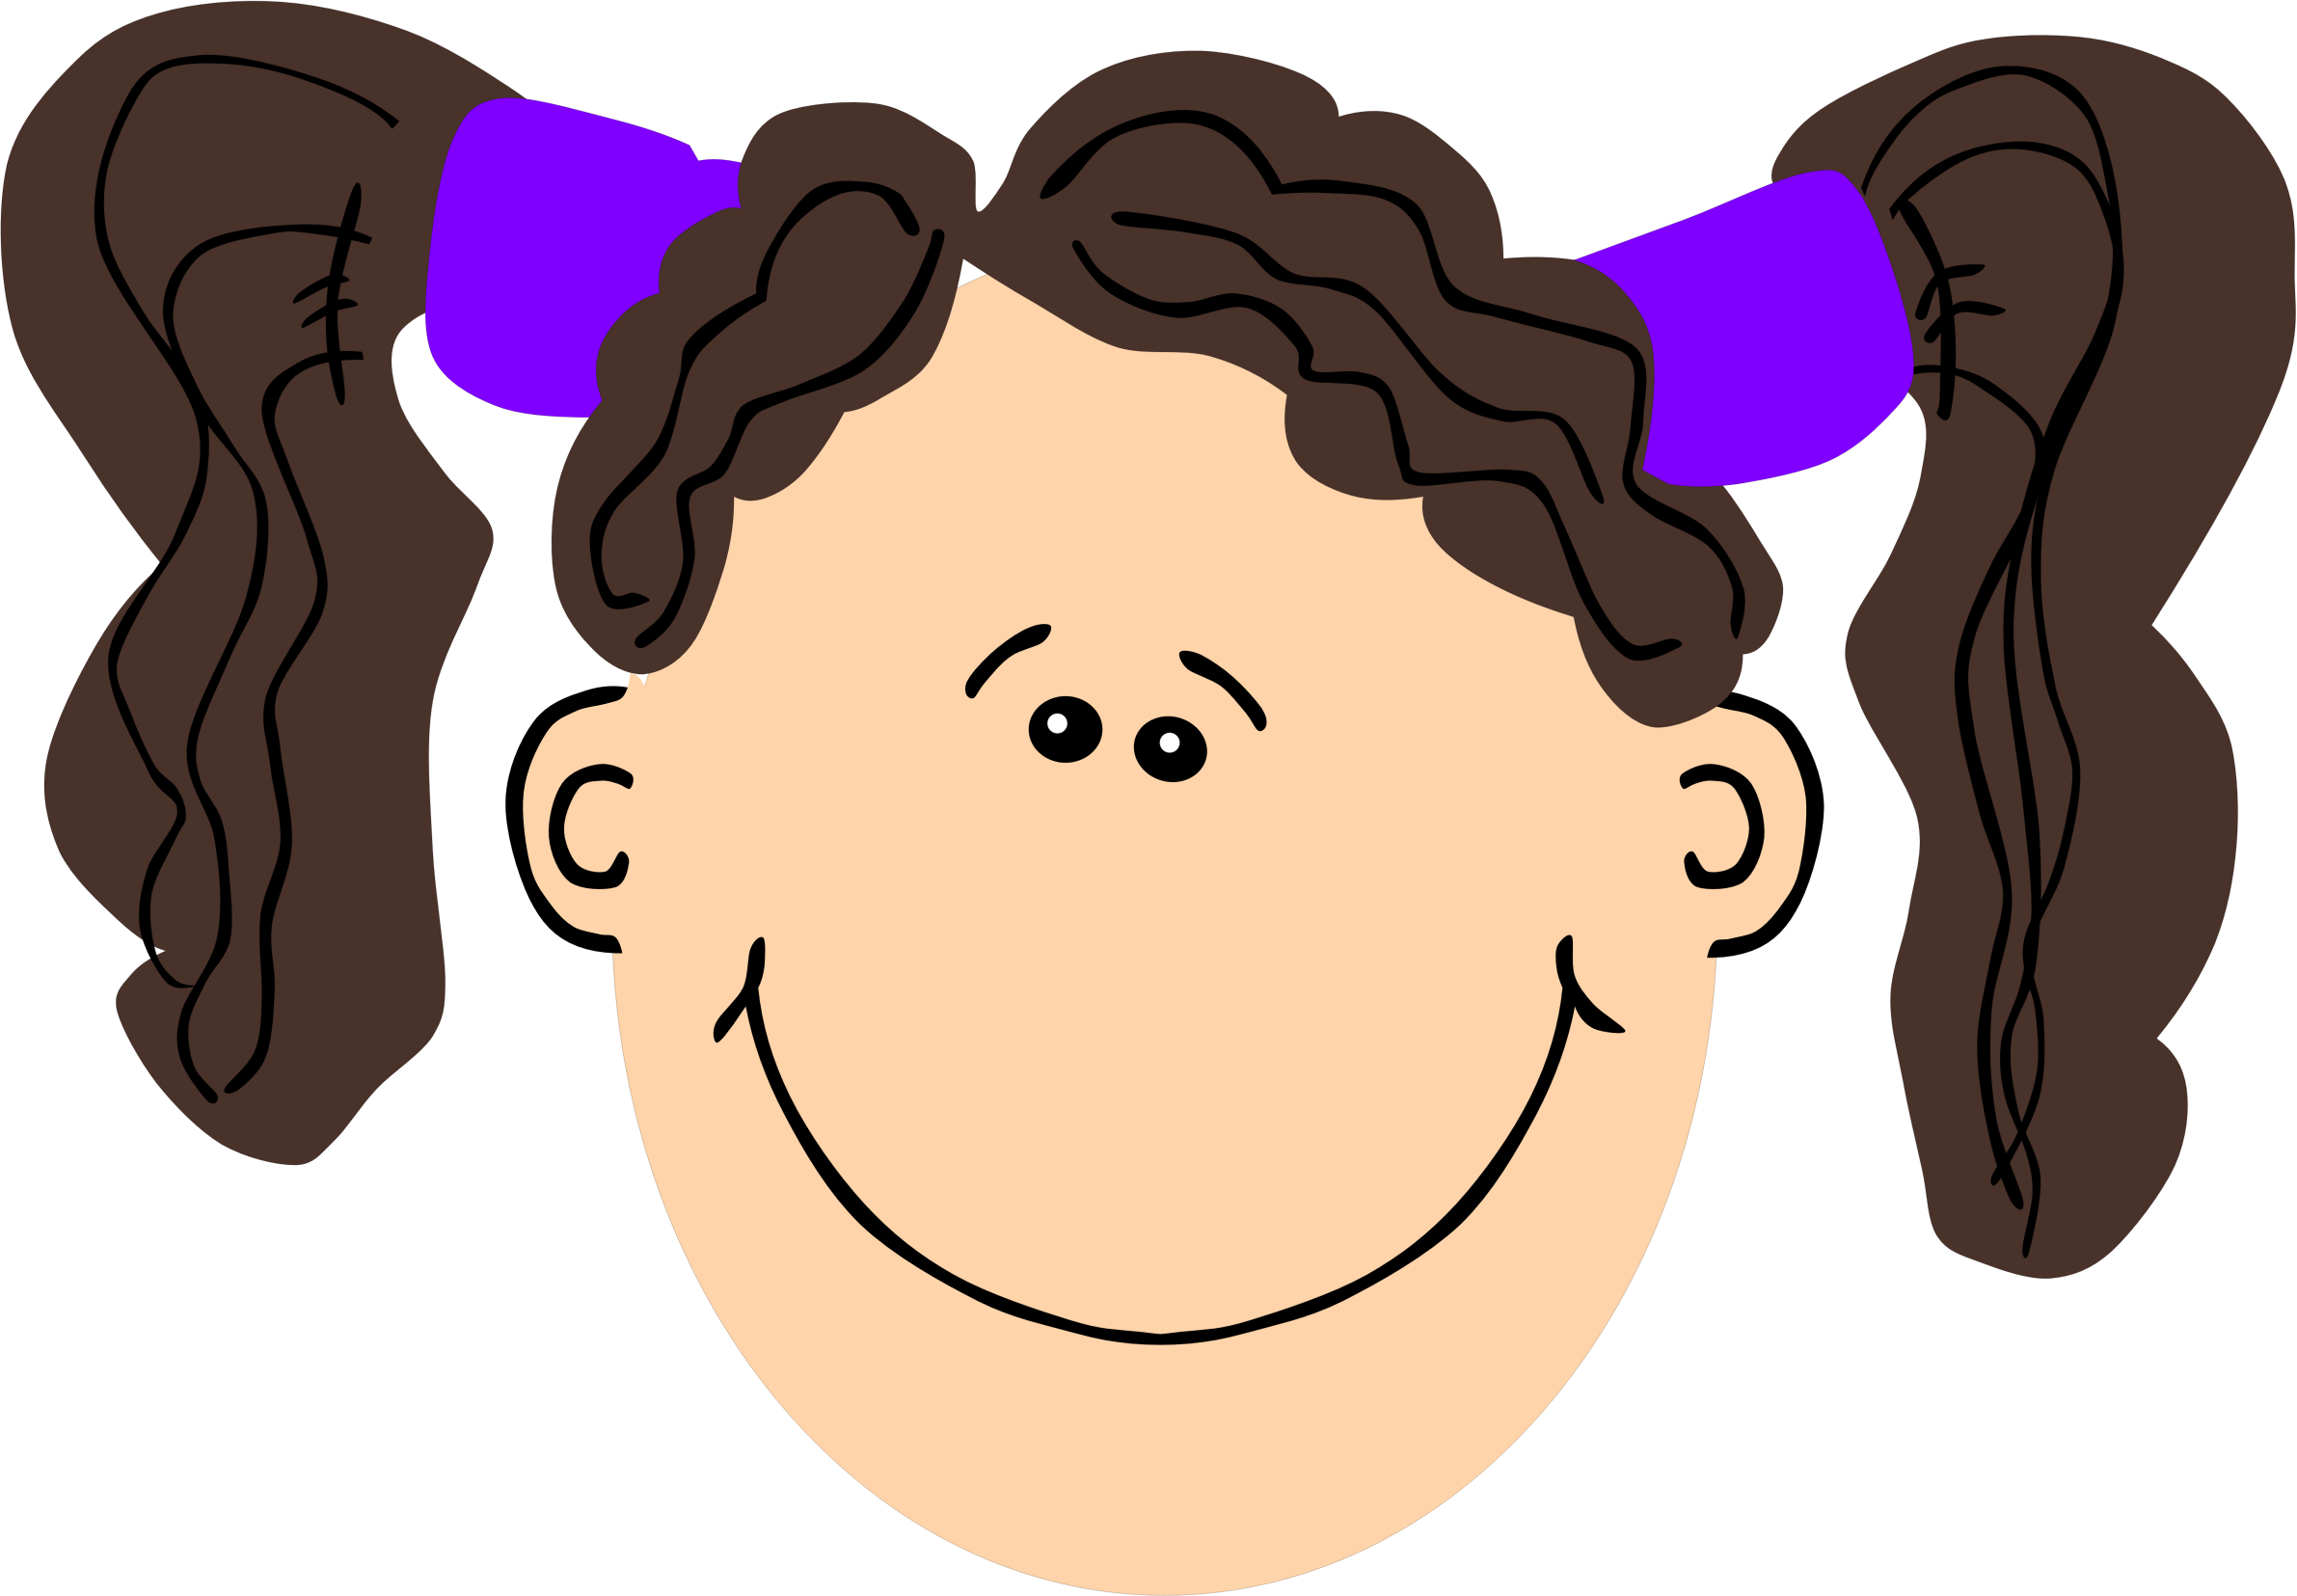 Hair clipart pigtail hair Pigtails girl Clipart and hair